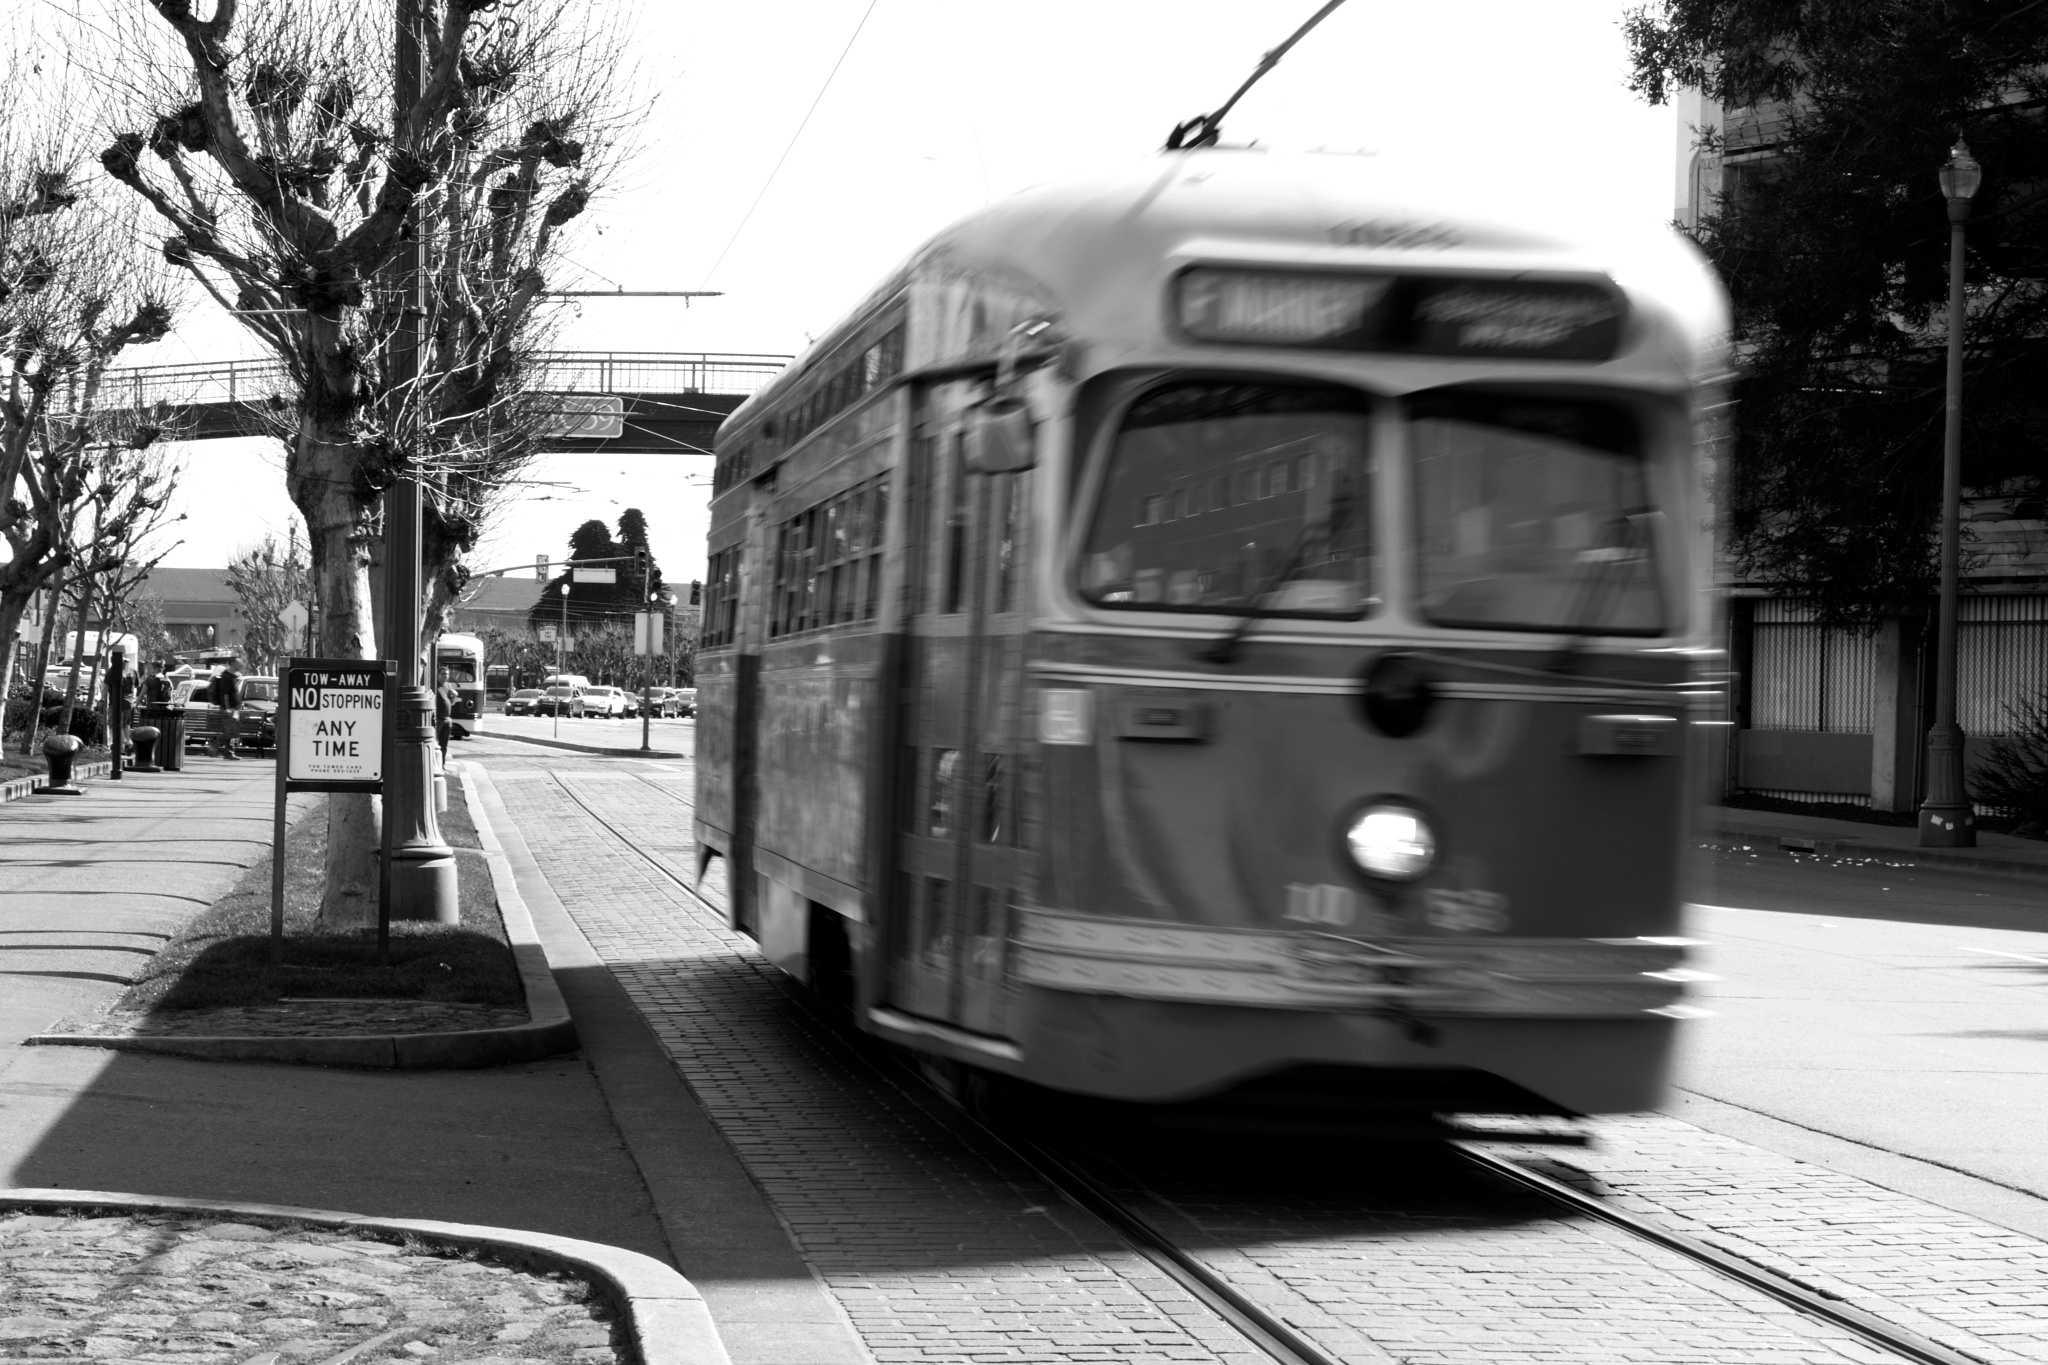 Streetcar on a Mission by aquilesiam